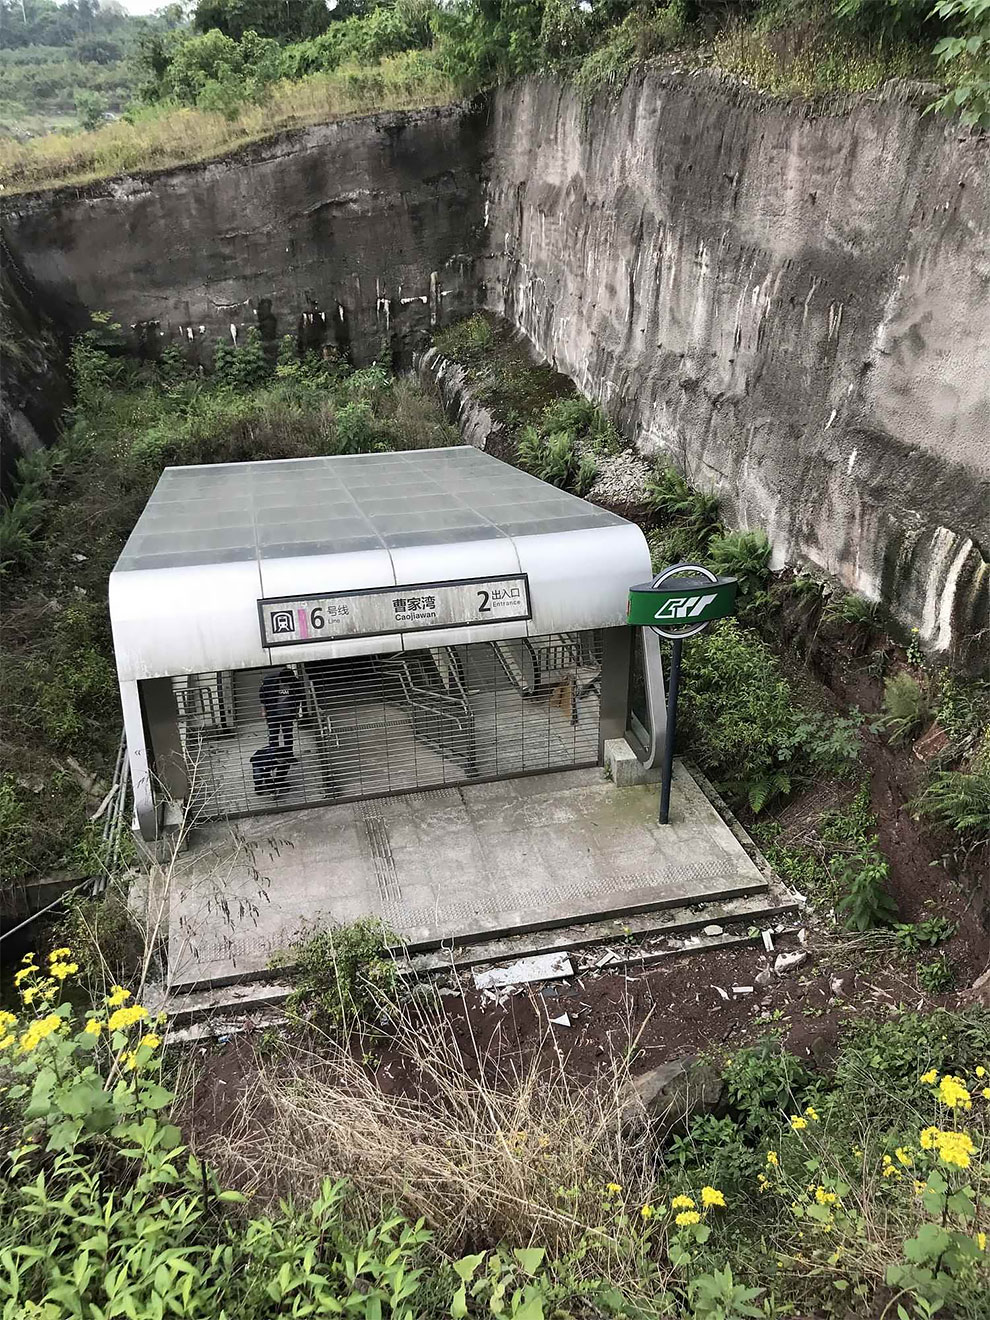 Lonely Subway Station in China